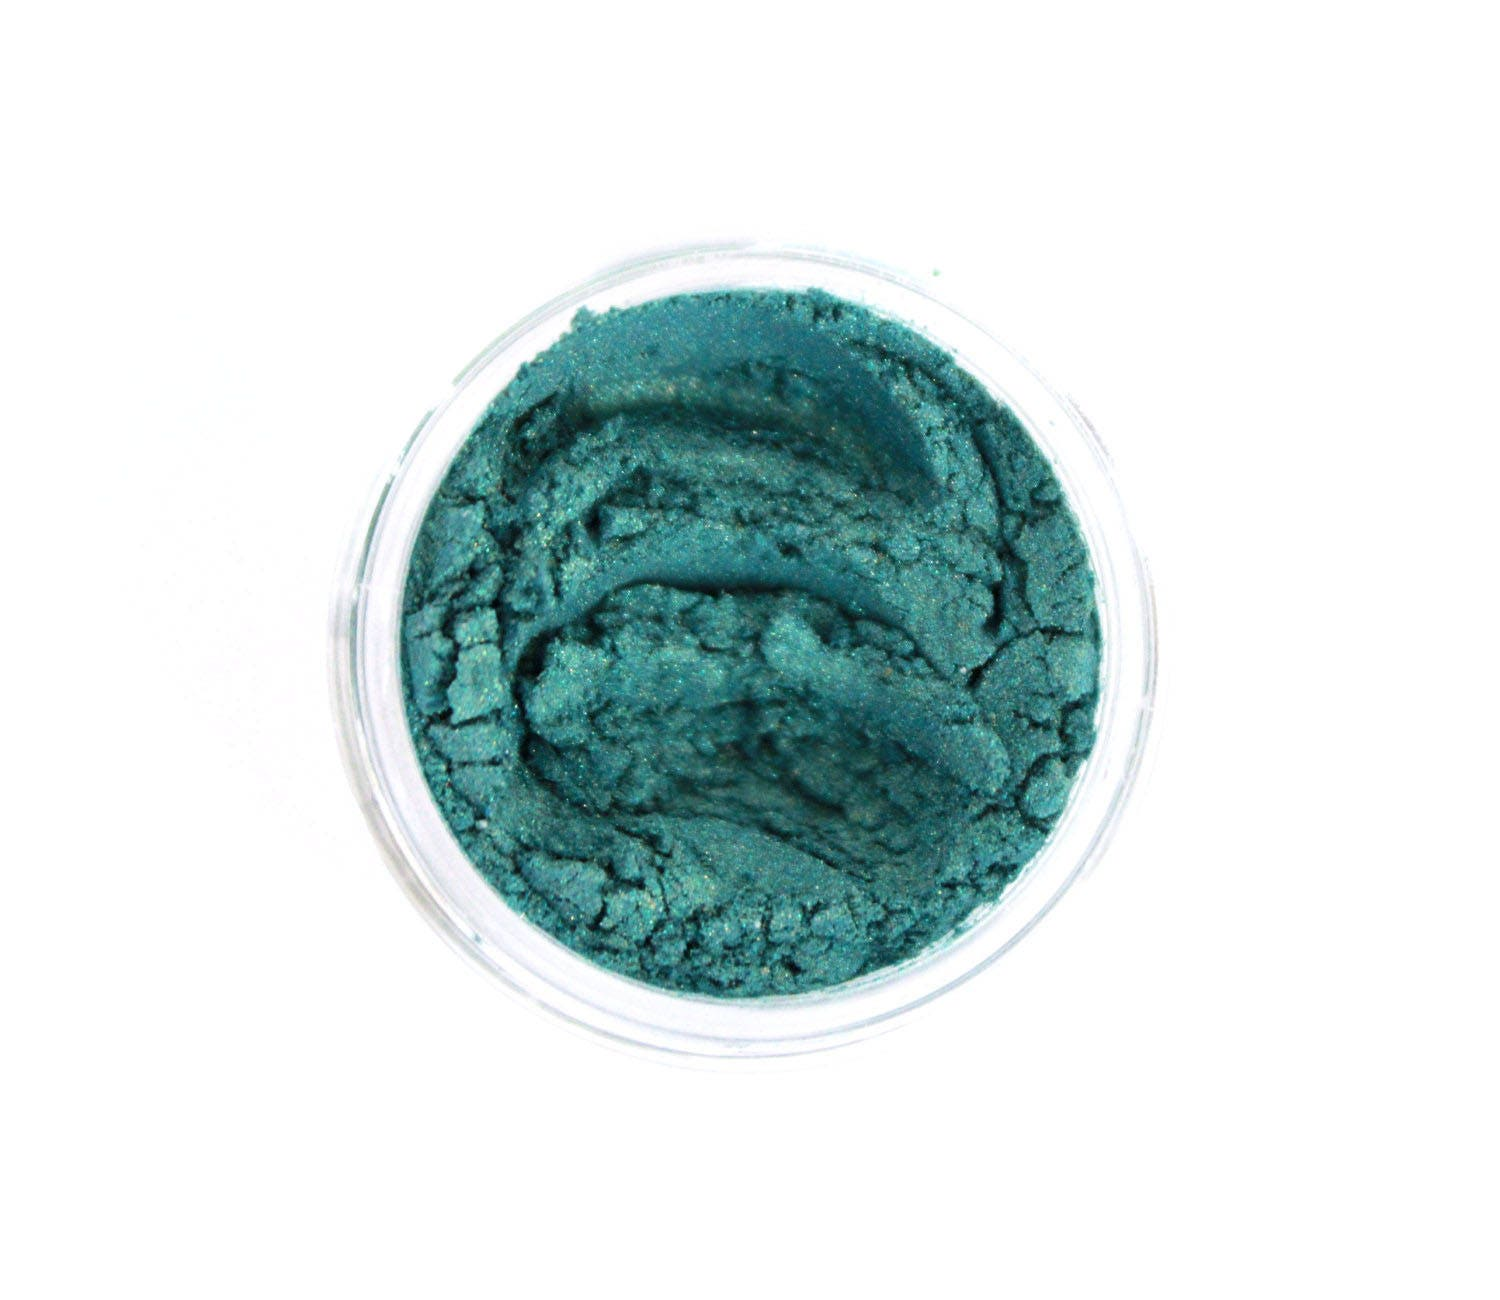 Mermaids Exist All Natural Makeup Turquoise Eye Makeup Etsy